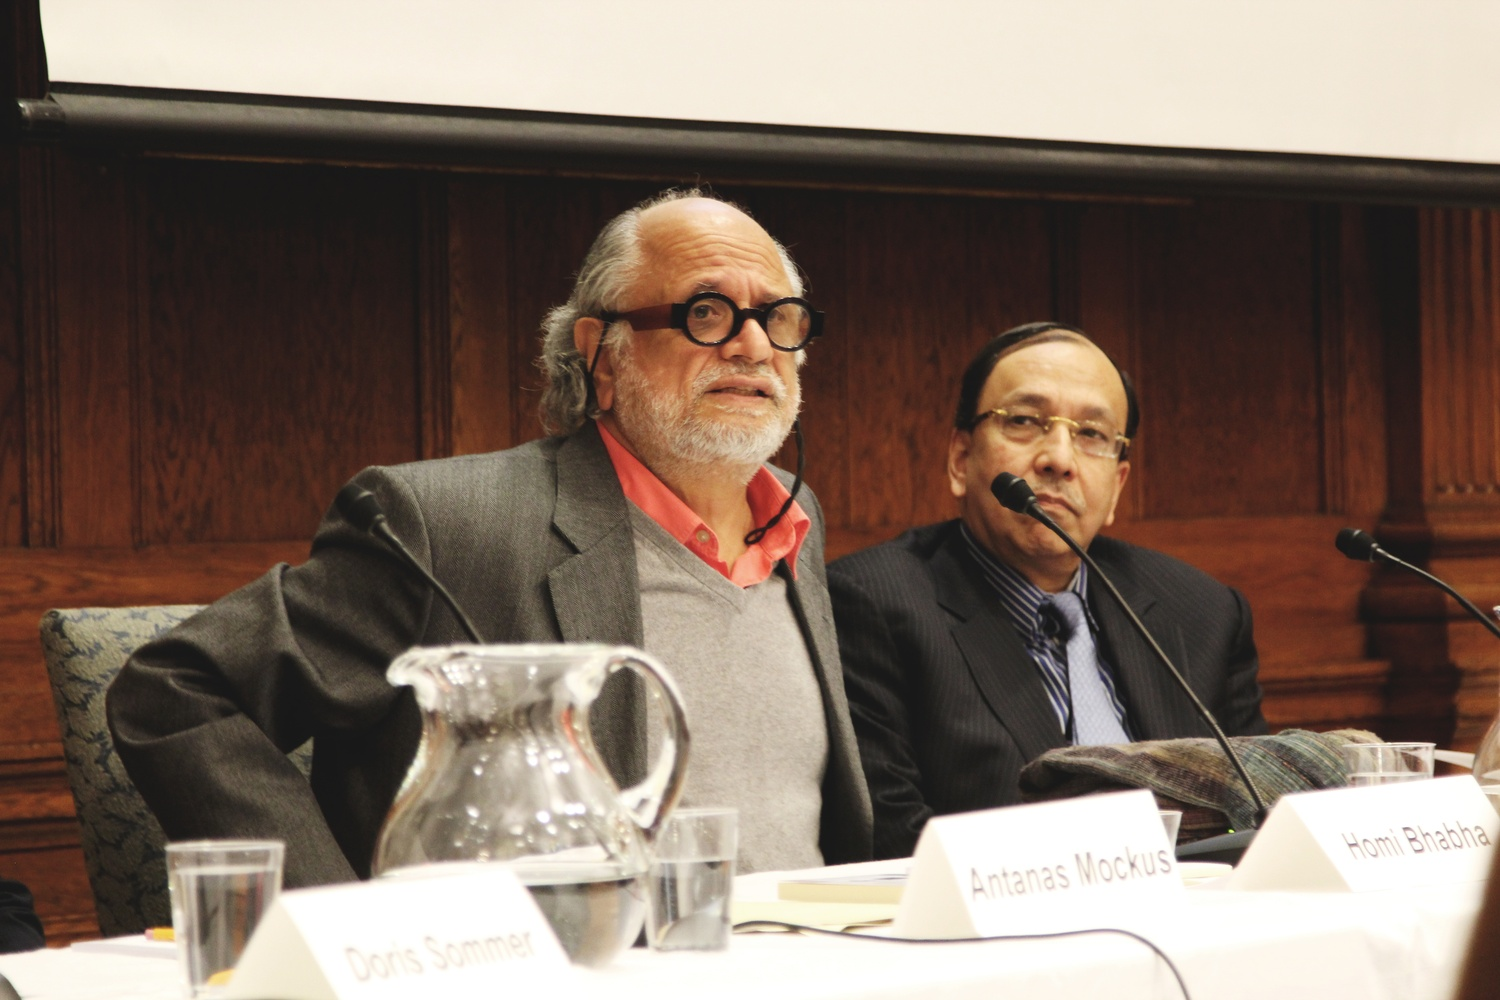 On Monday evening at the Barker Center Room 110, Homi Bhabha, the Director of the Mahindra  Humanities Center, moderates the discussion on social change.